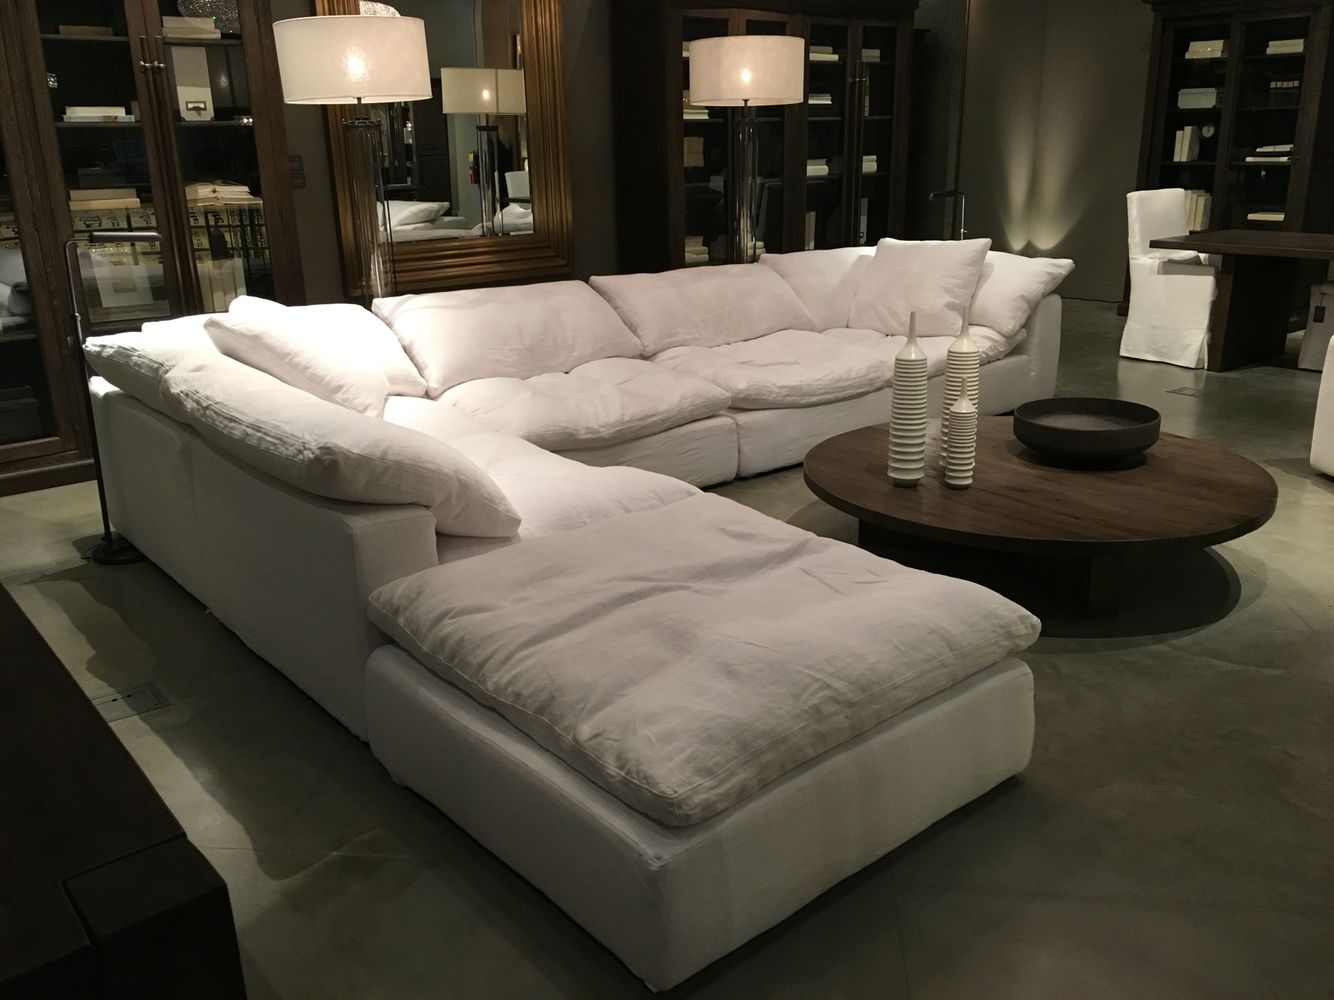 Restoration Hardware Sectional cloud Couch future